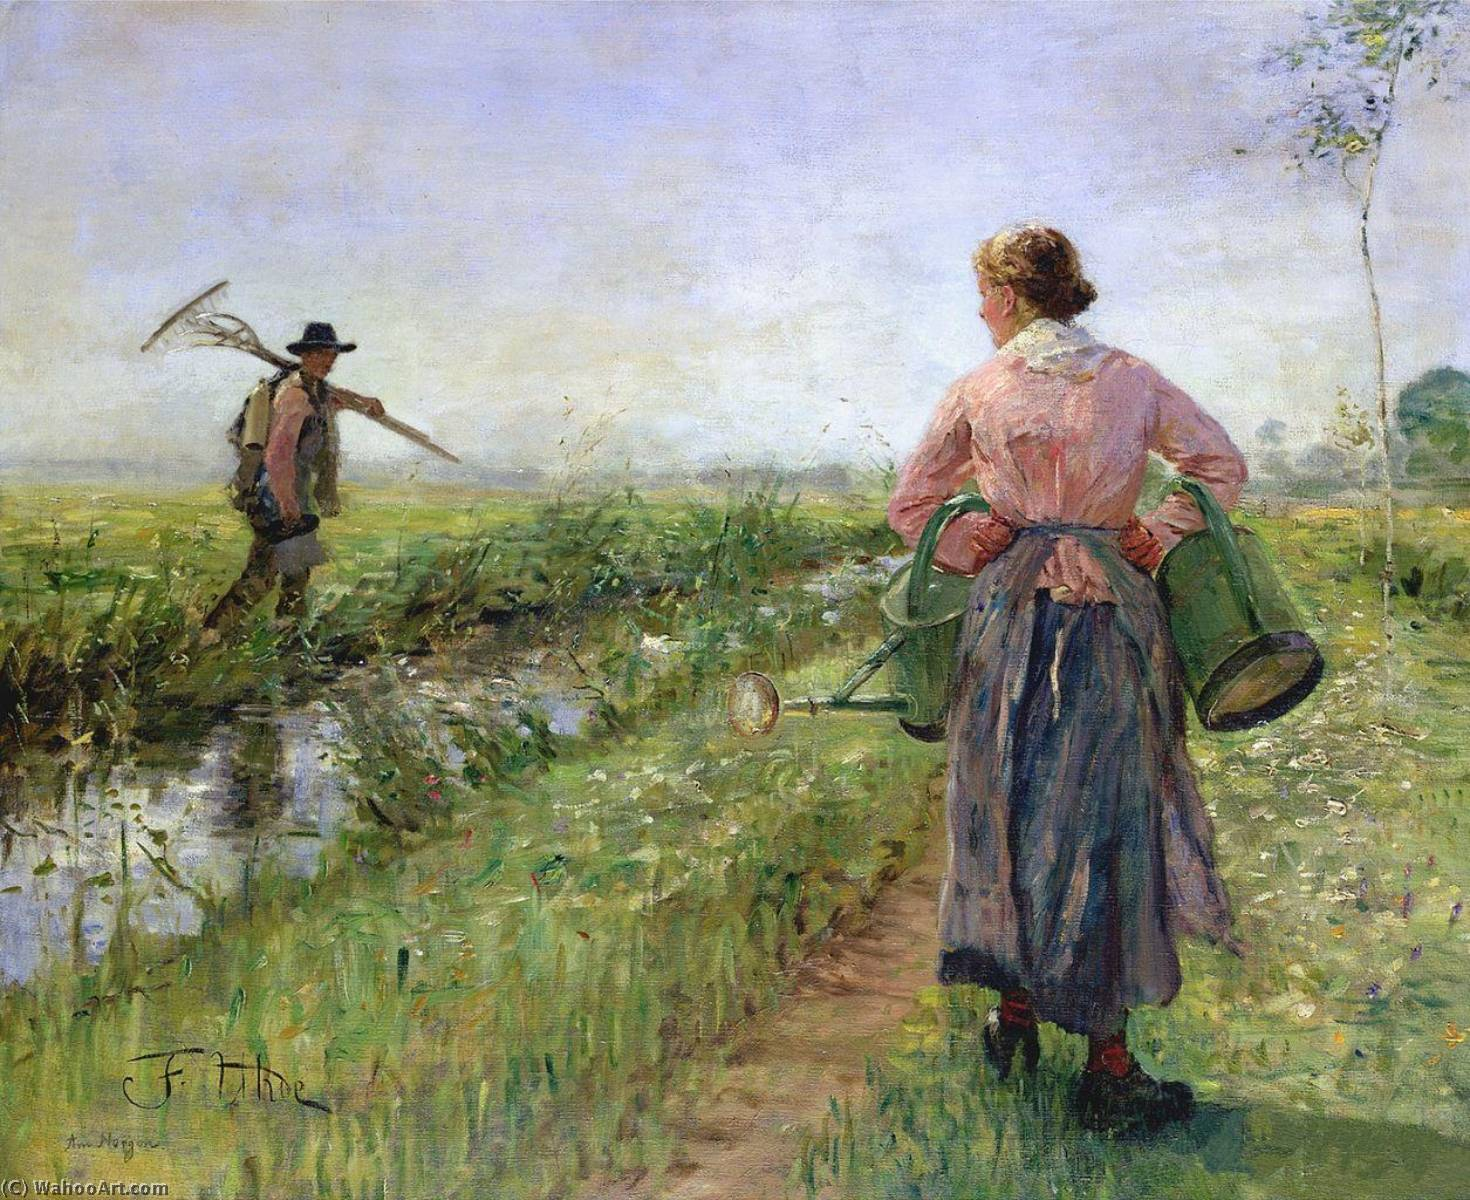 In the Morning, 1889 by Fritz Von Uhde (1848-1911) | Oil Painting | WahooArt.com